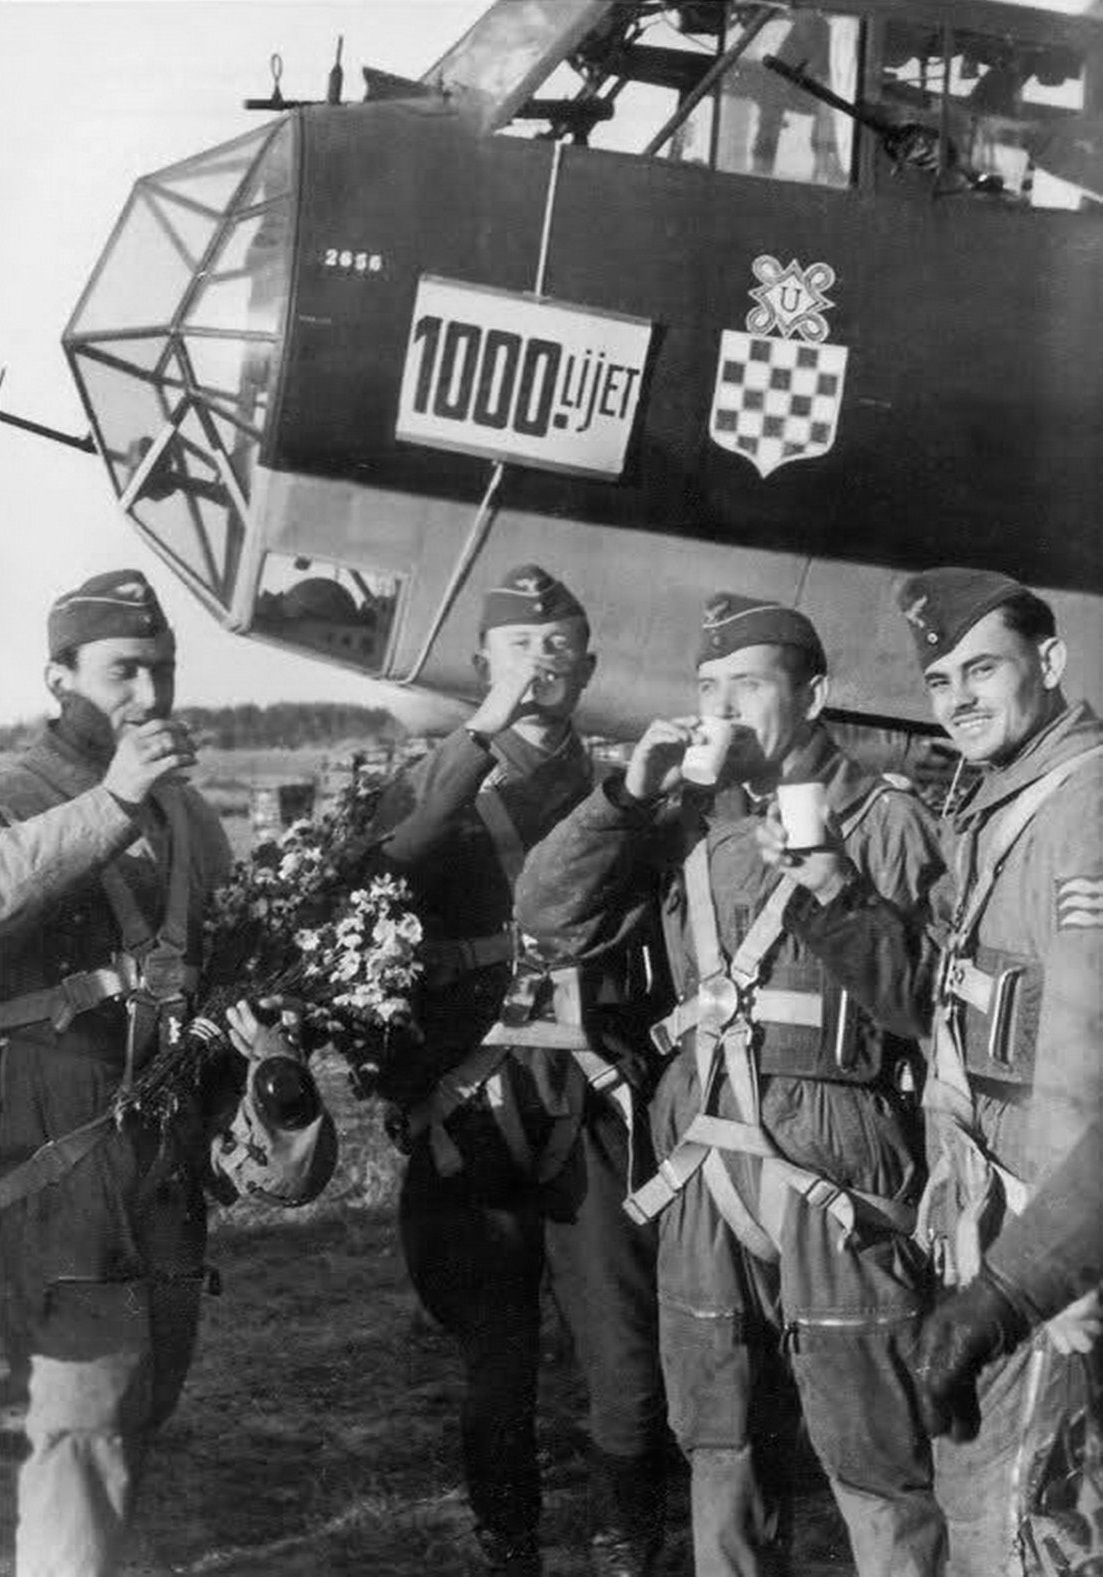 Members of the Croatian Air Force Legion (HZL) pose in front of ...